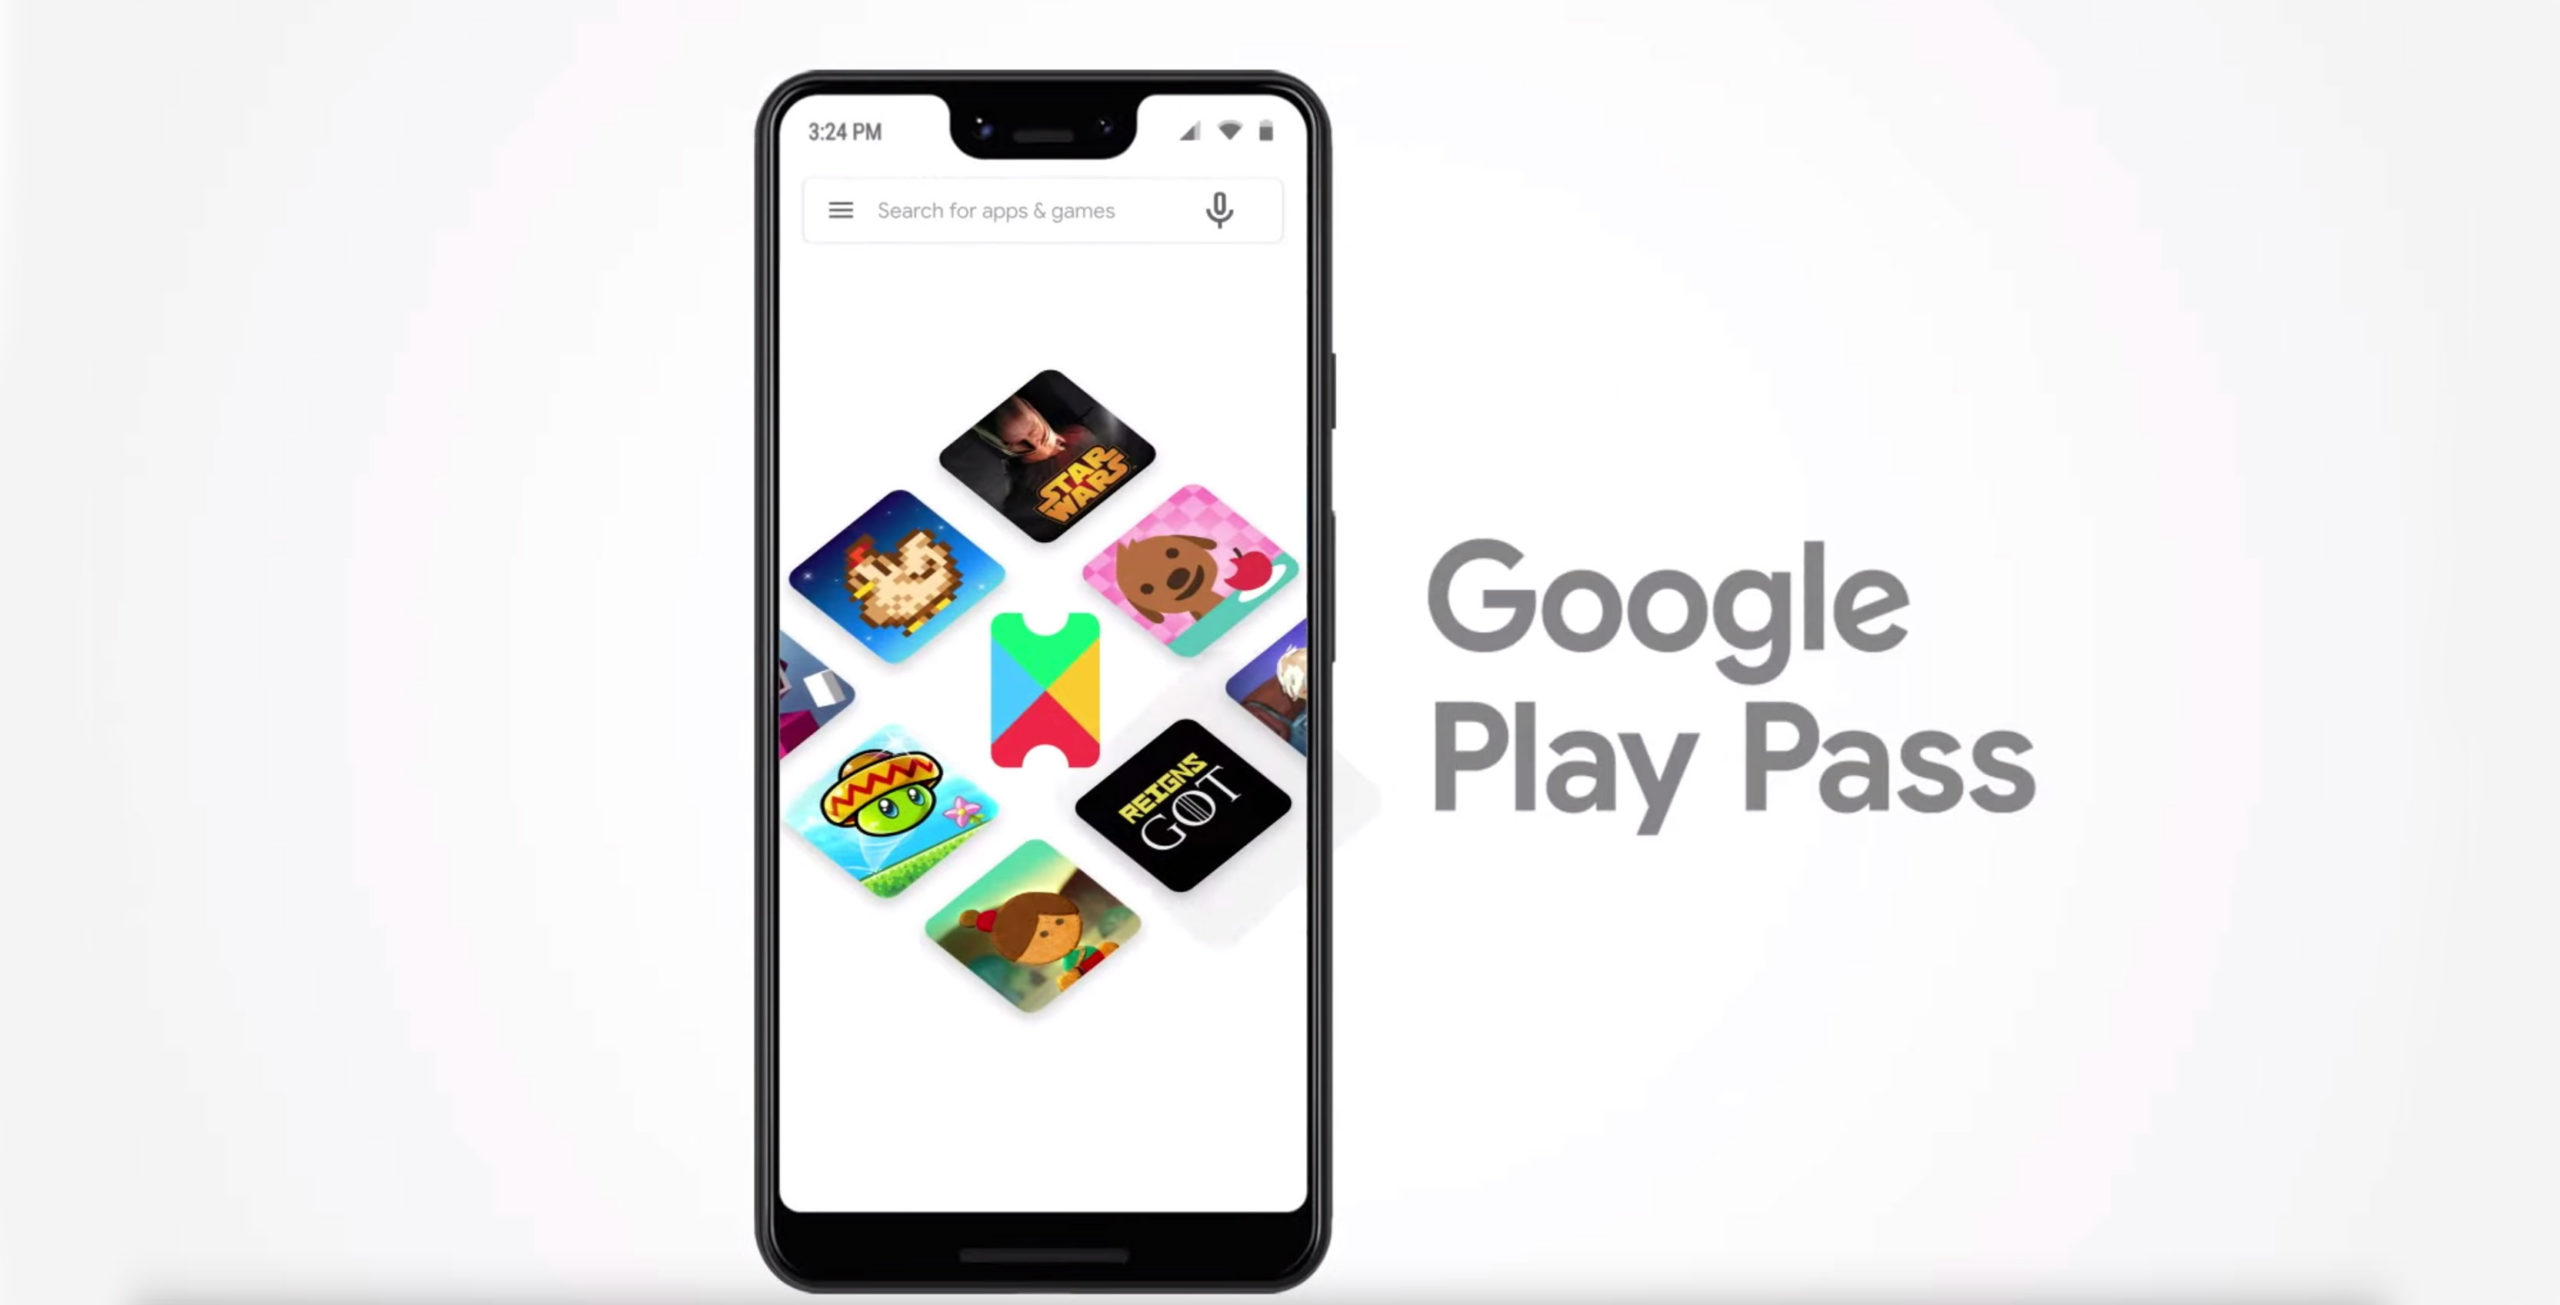 Google Play Pass now live in the US for $4.99 a month